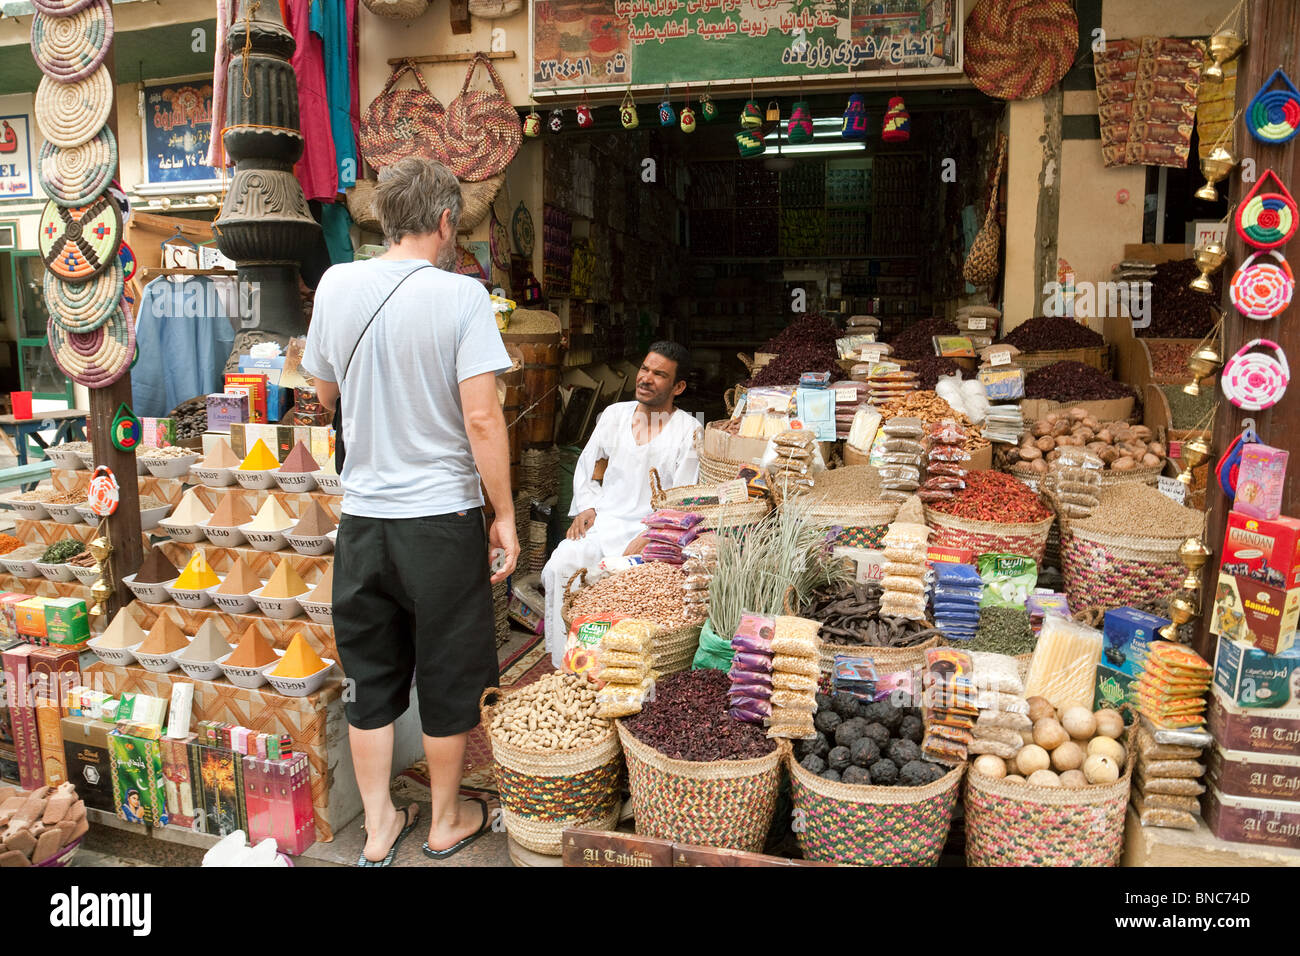 A tourist shopping for spices in the market, Aswan, Upper Egypt - Stock Image